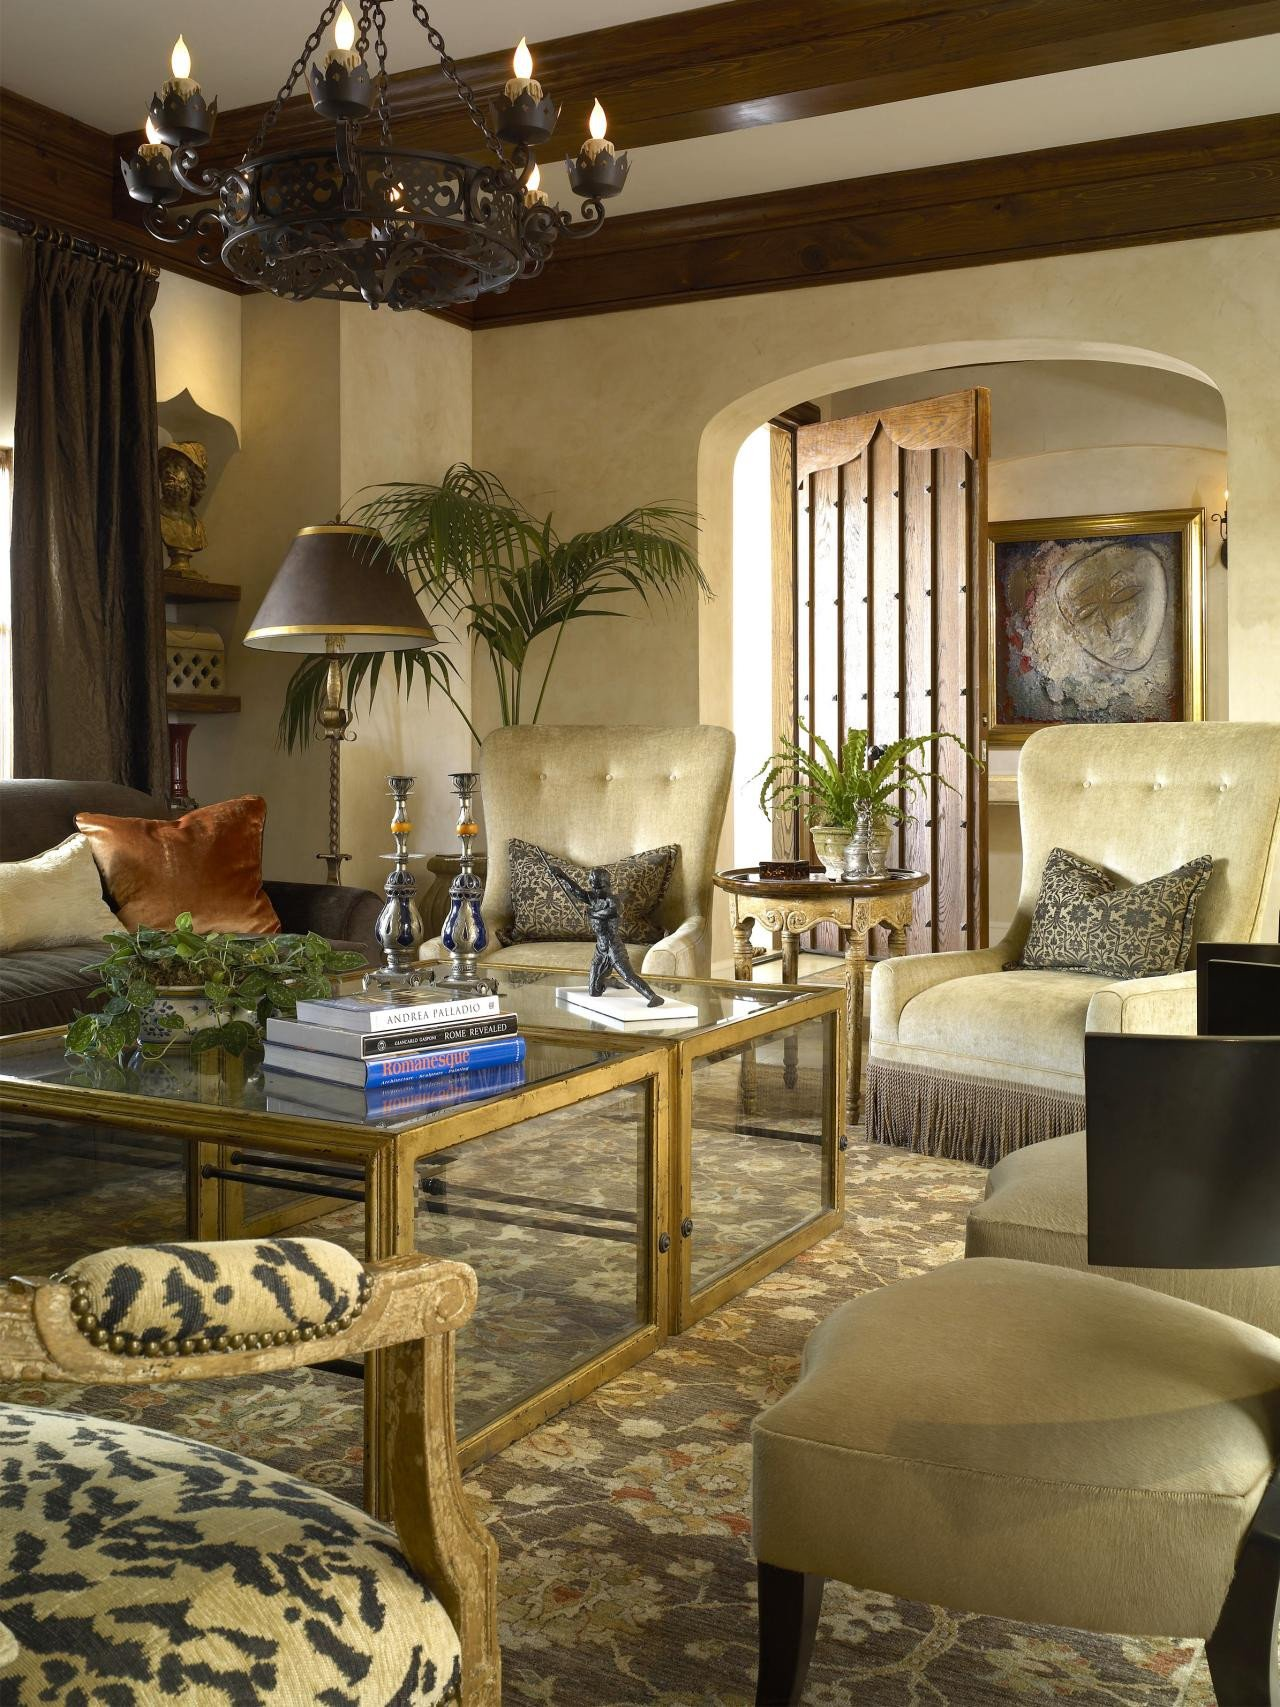 Italian Living Room Decorating Ideas New Old World Design Ideas Interior Design Styles and Color Schemes for Home Decorating